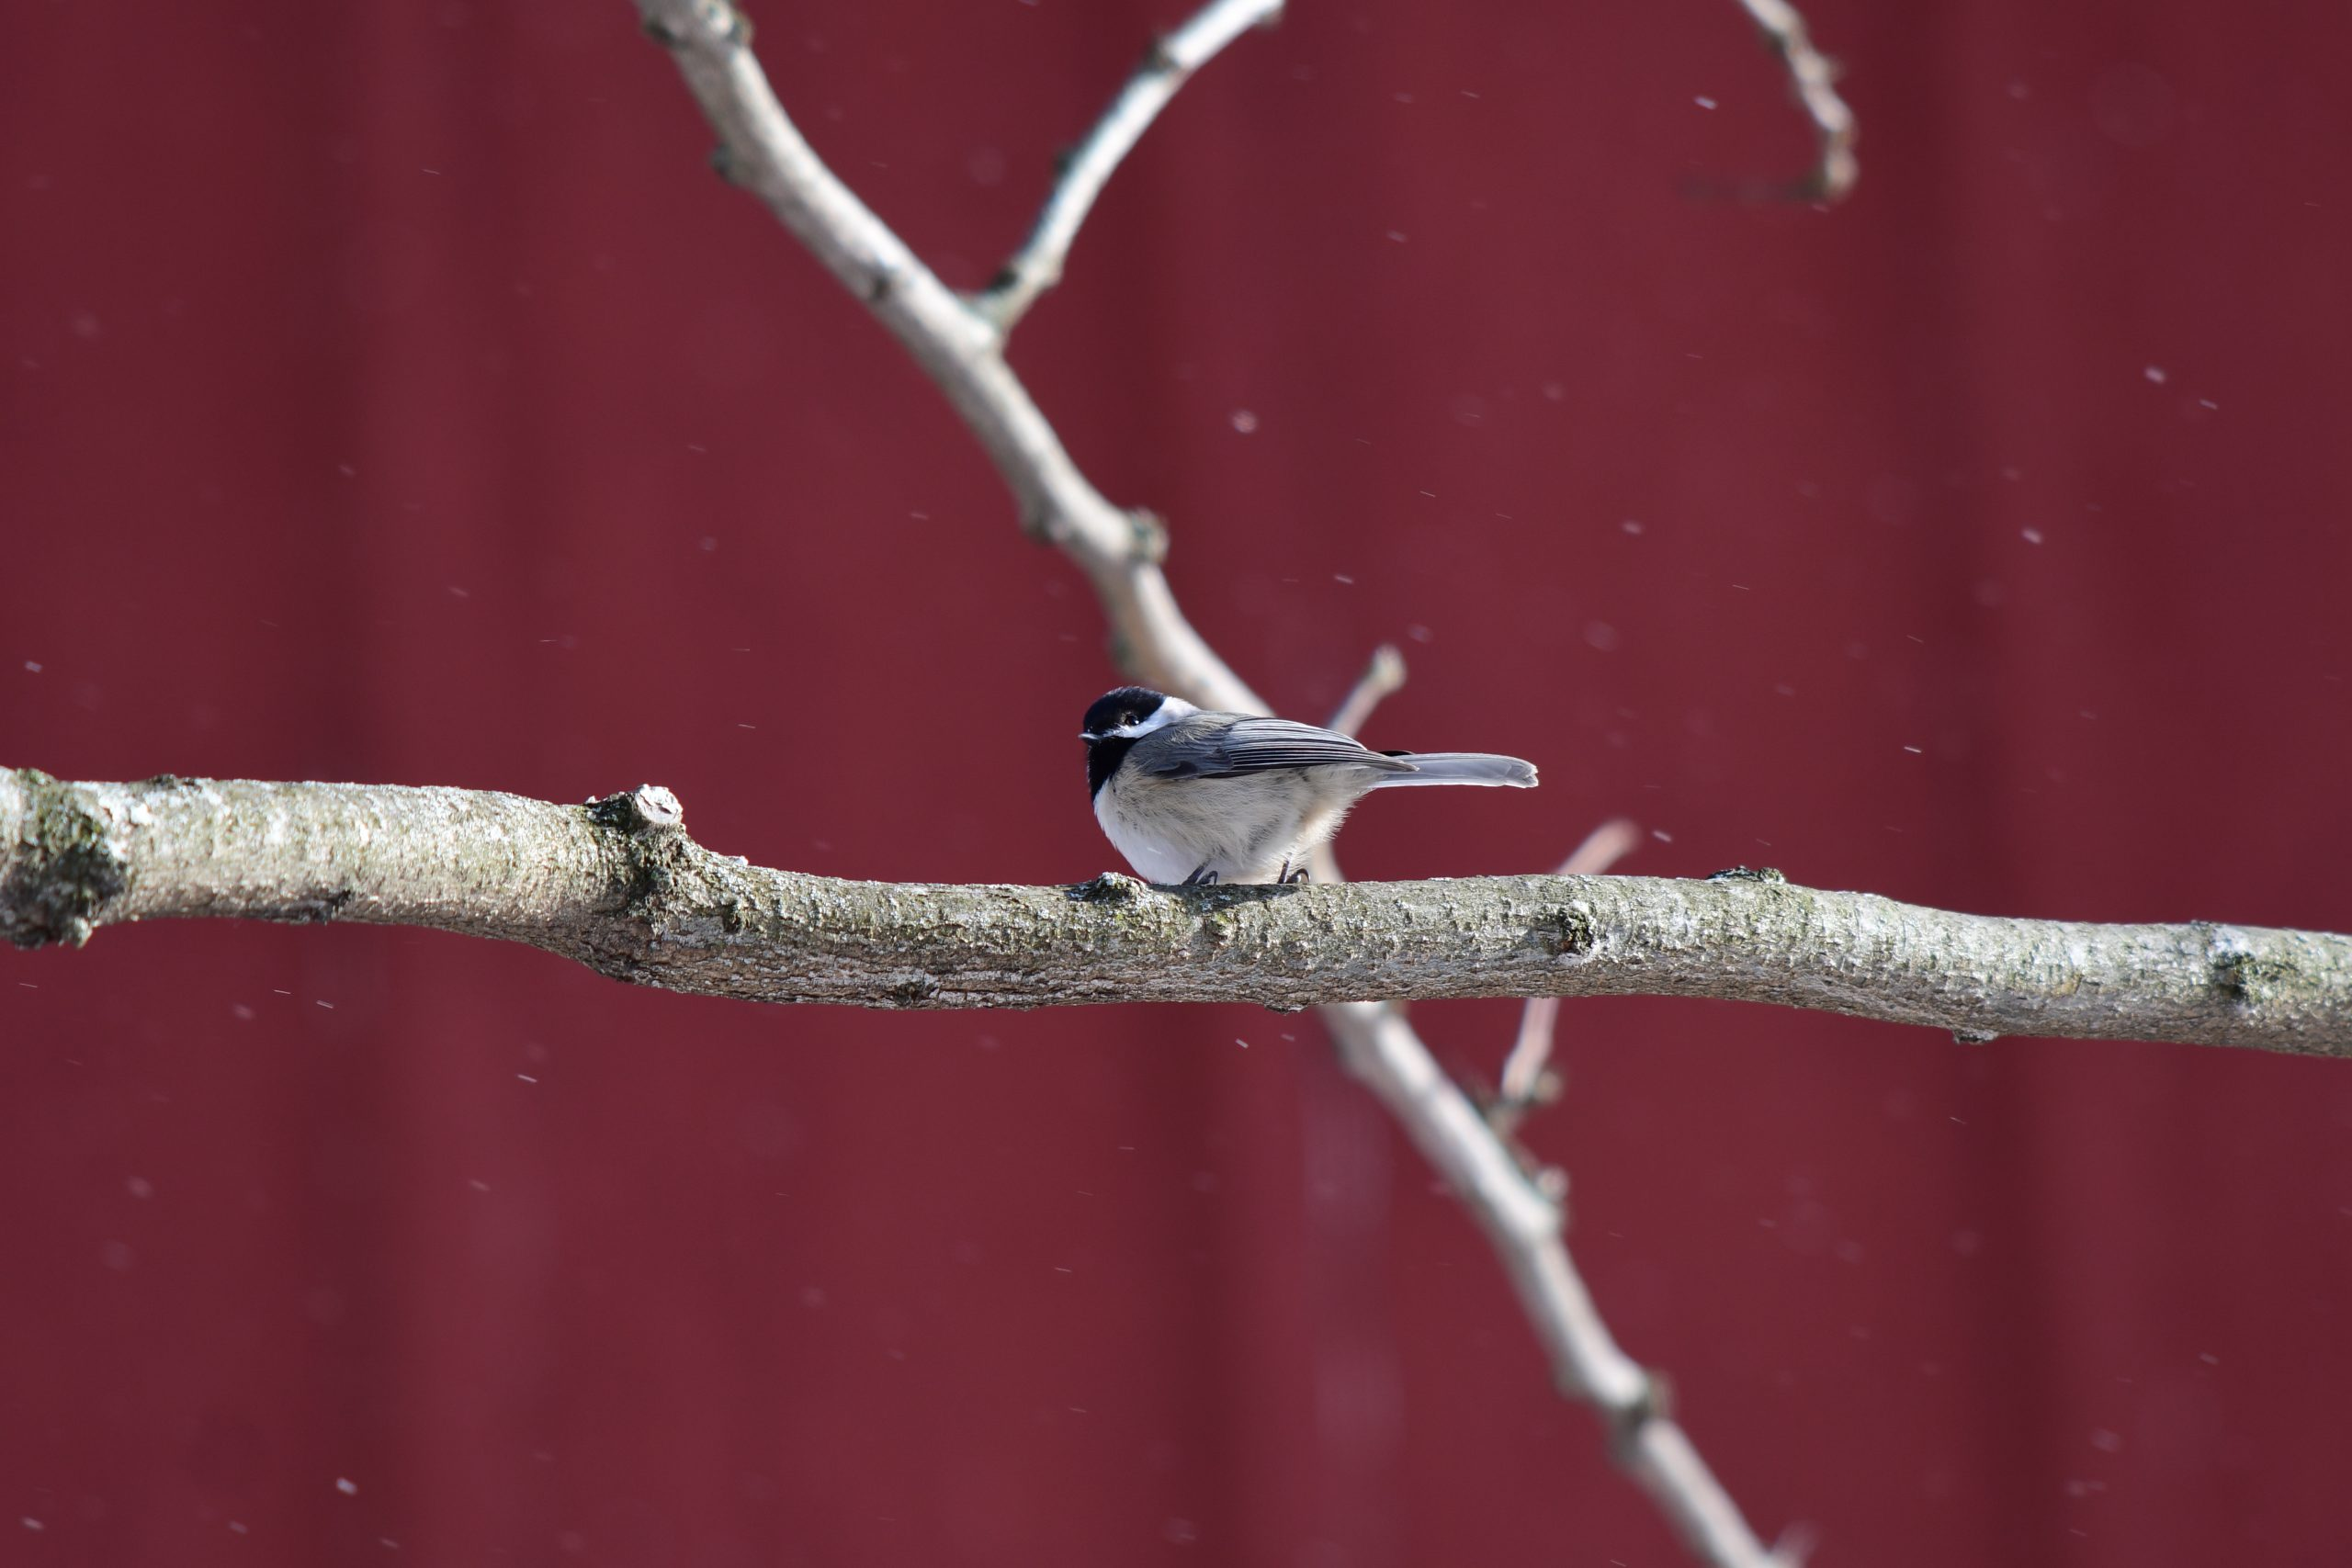 A Carolina Chickadee sits on a tree branch in front of a bright red barn.